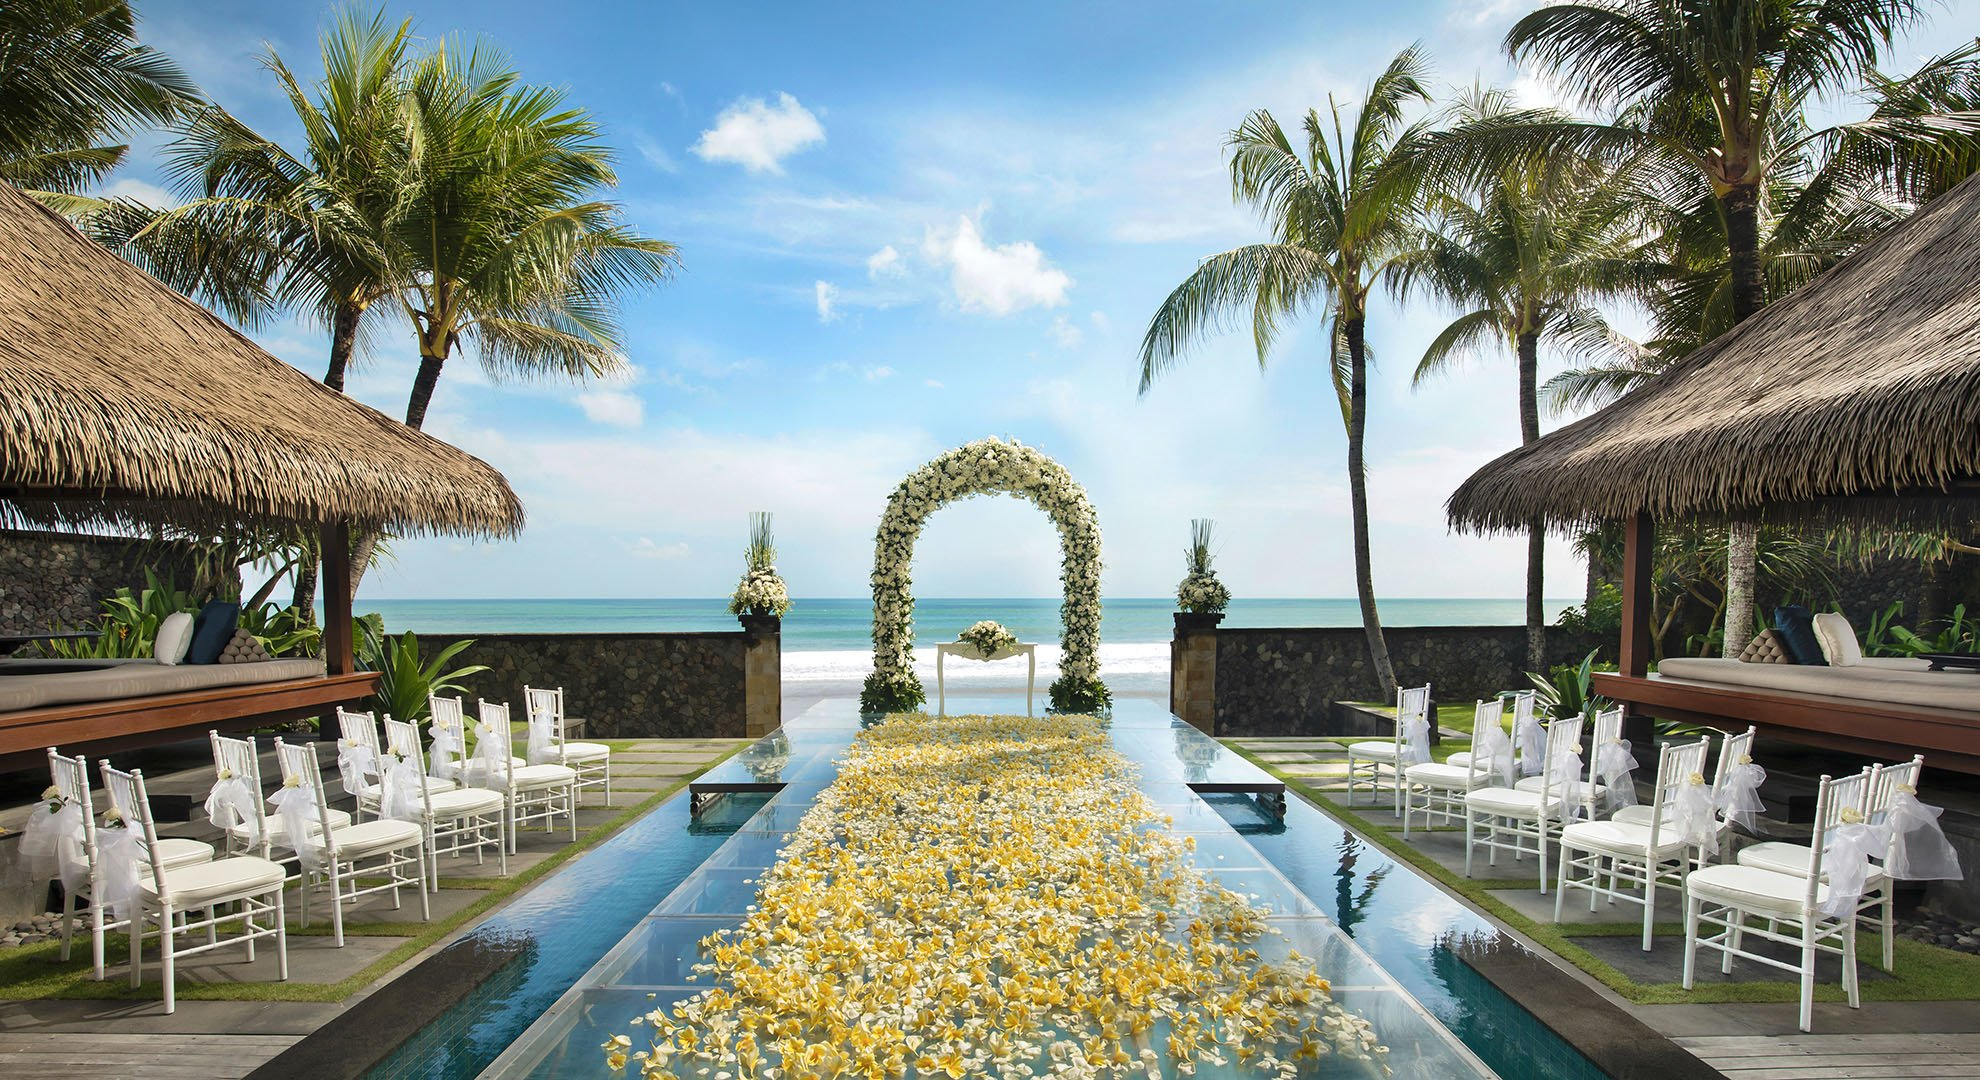 Bali Weddings | Weddings at The Legian Bali